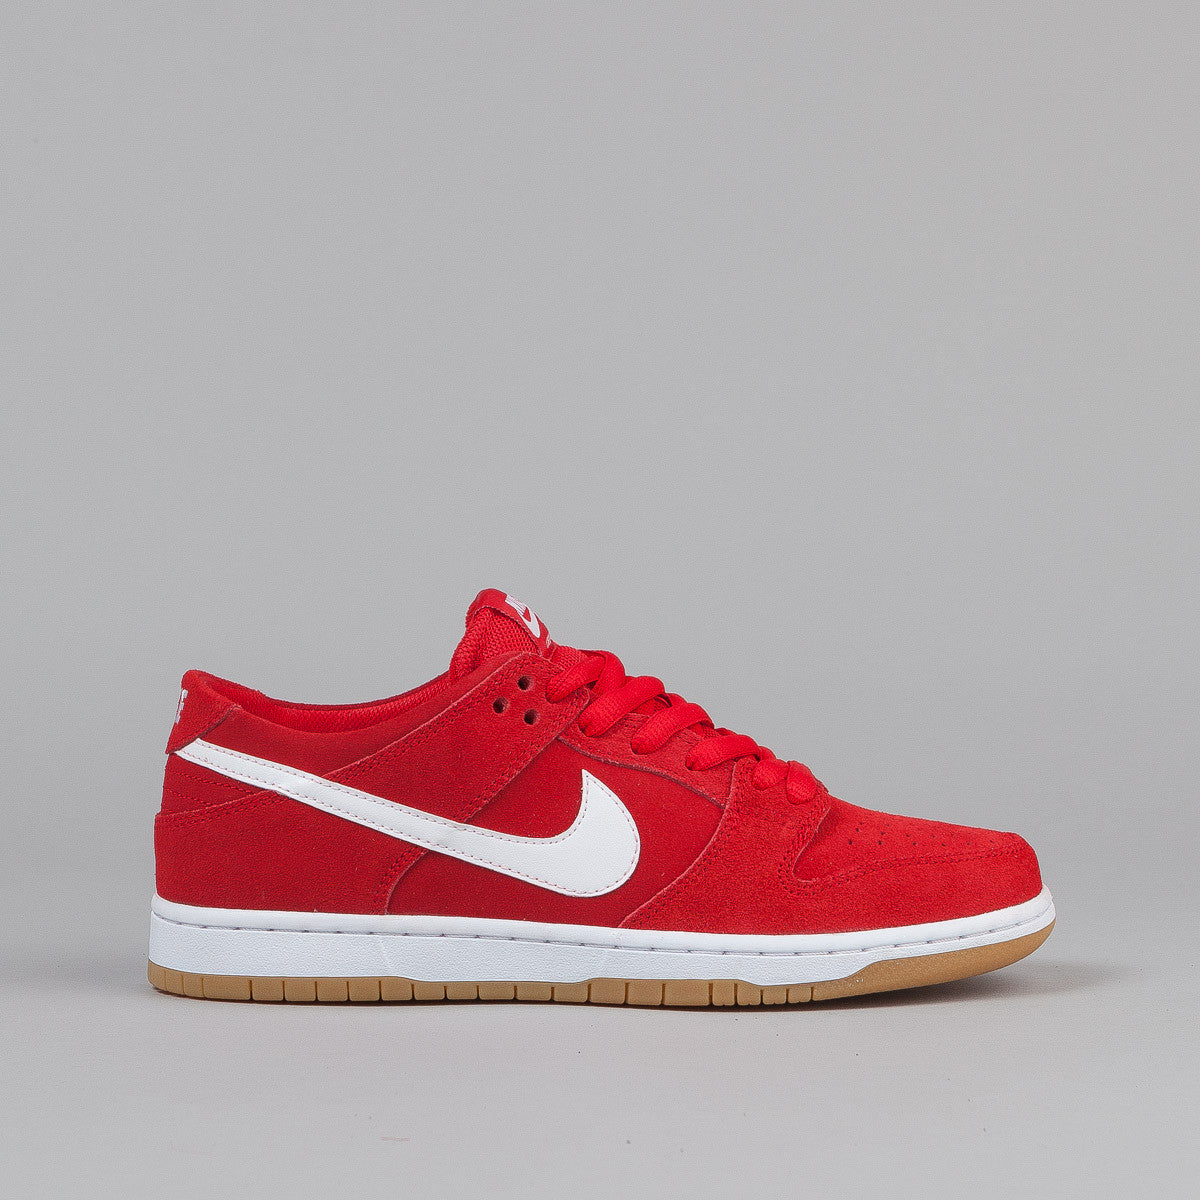 Nike SB Dunk Low Pro Ishod Wair Shoes - Red / White